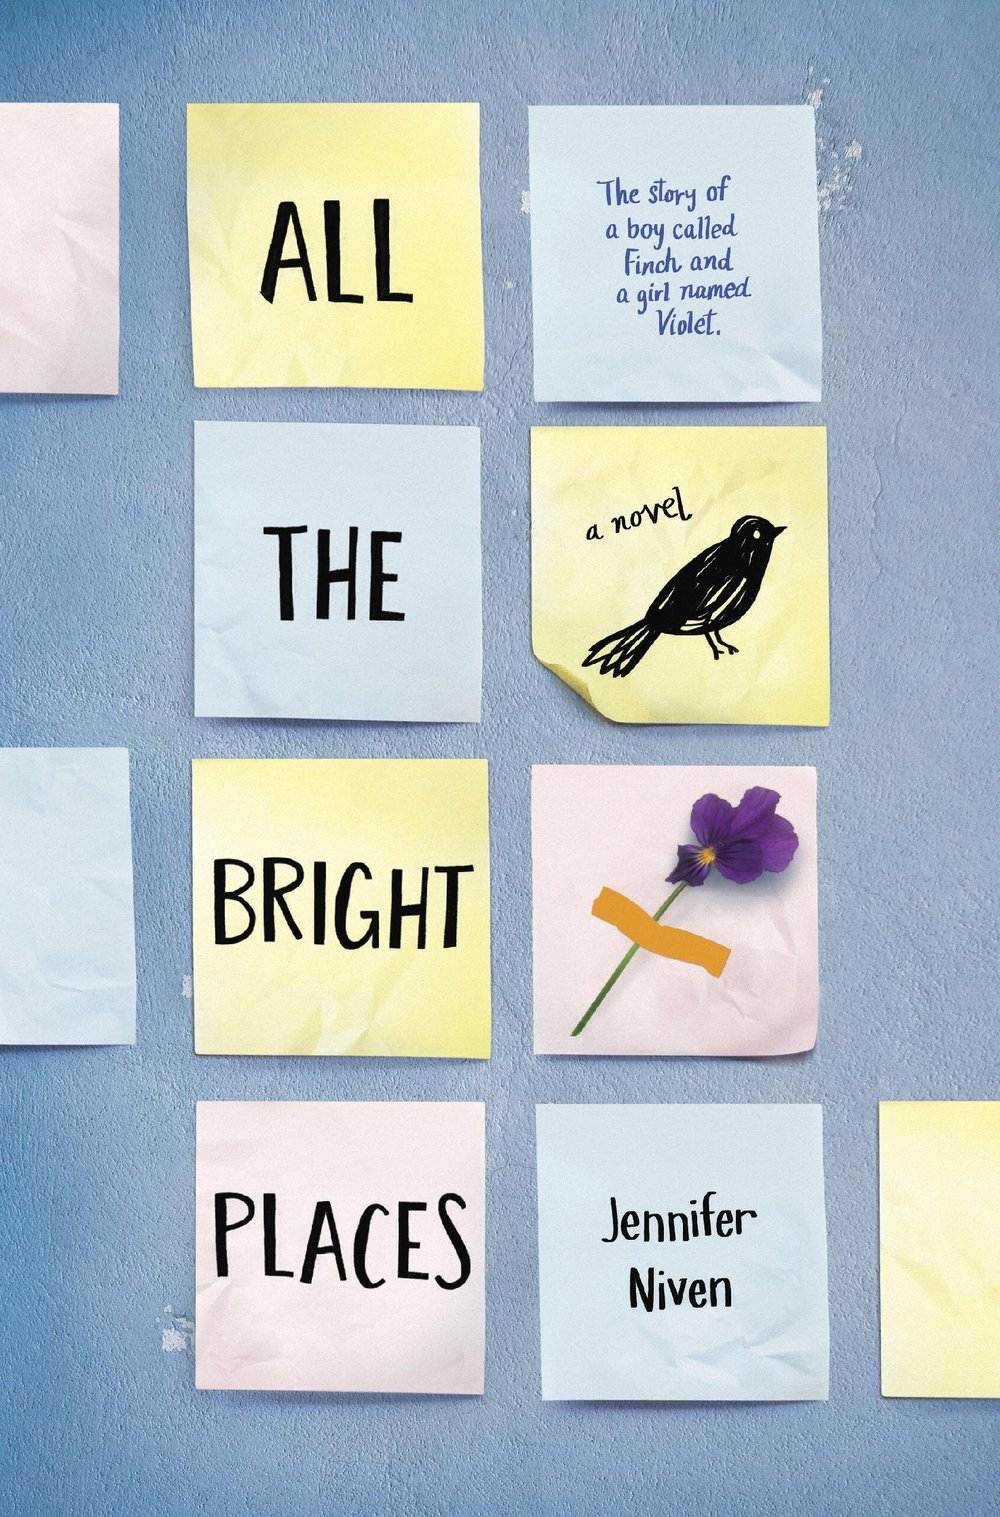 books-becoming-movies-in-2017-all-the-bright-places.jpg